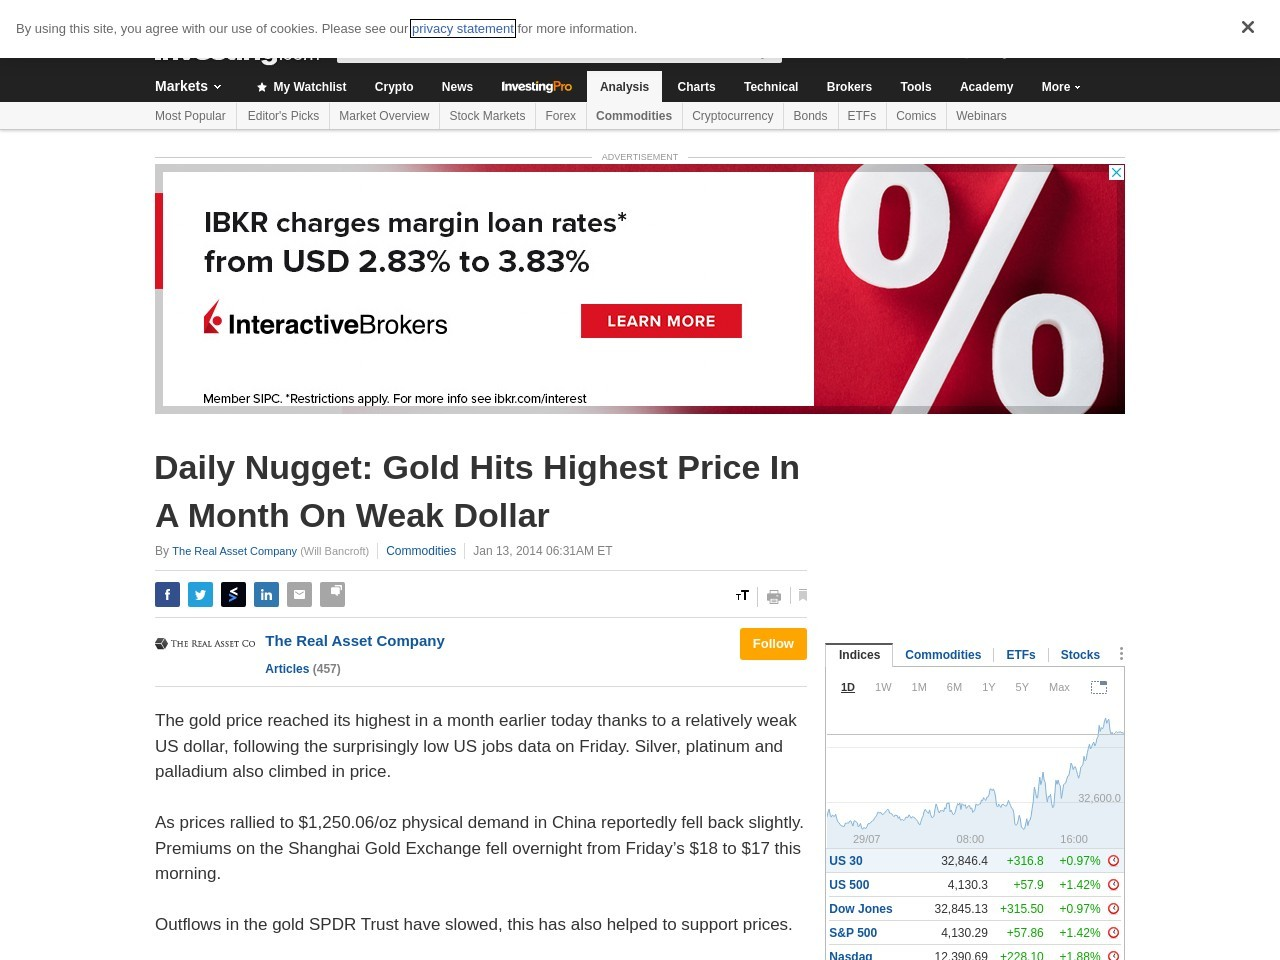 Daily Nugget: Gold Hits Highest Price In A Month On Weak Dollar